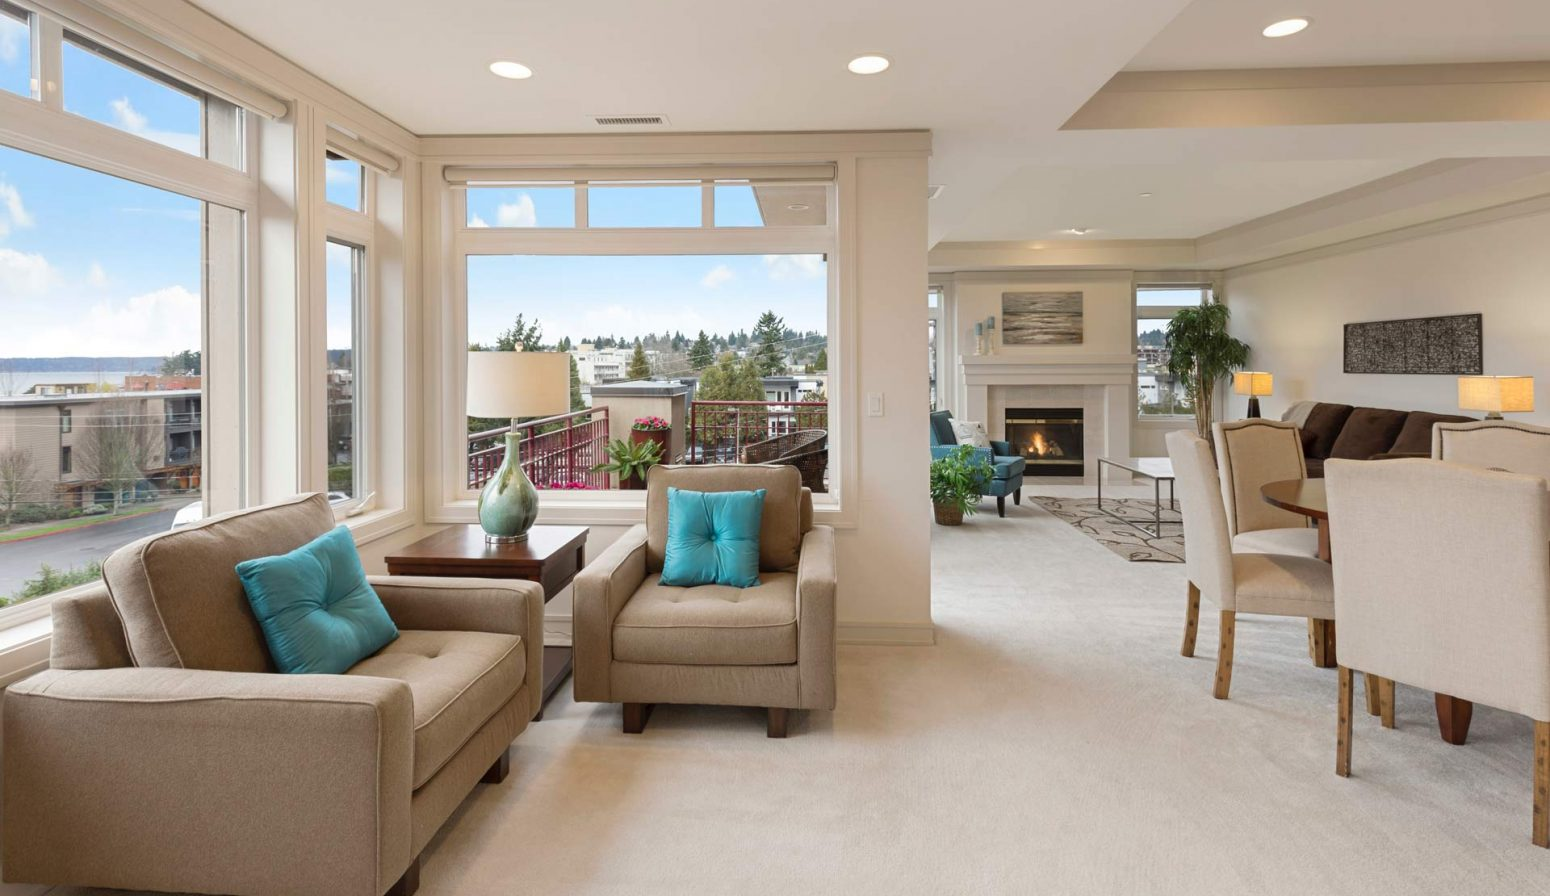 5 Steps to Choosing the Right Replacement Windows